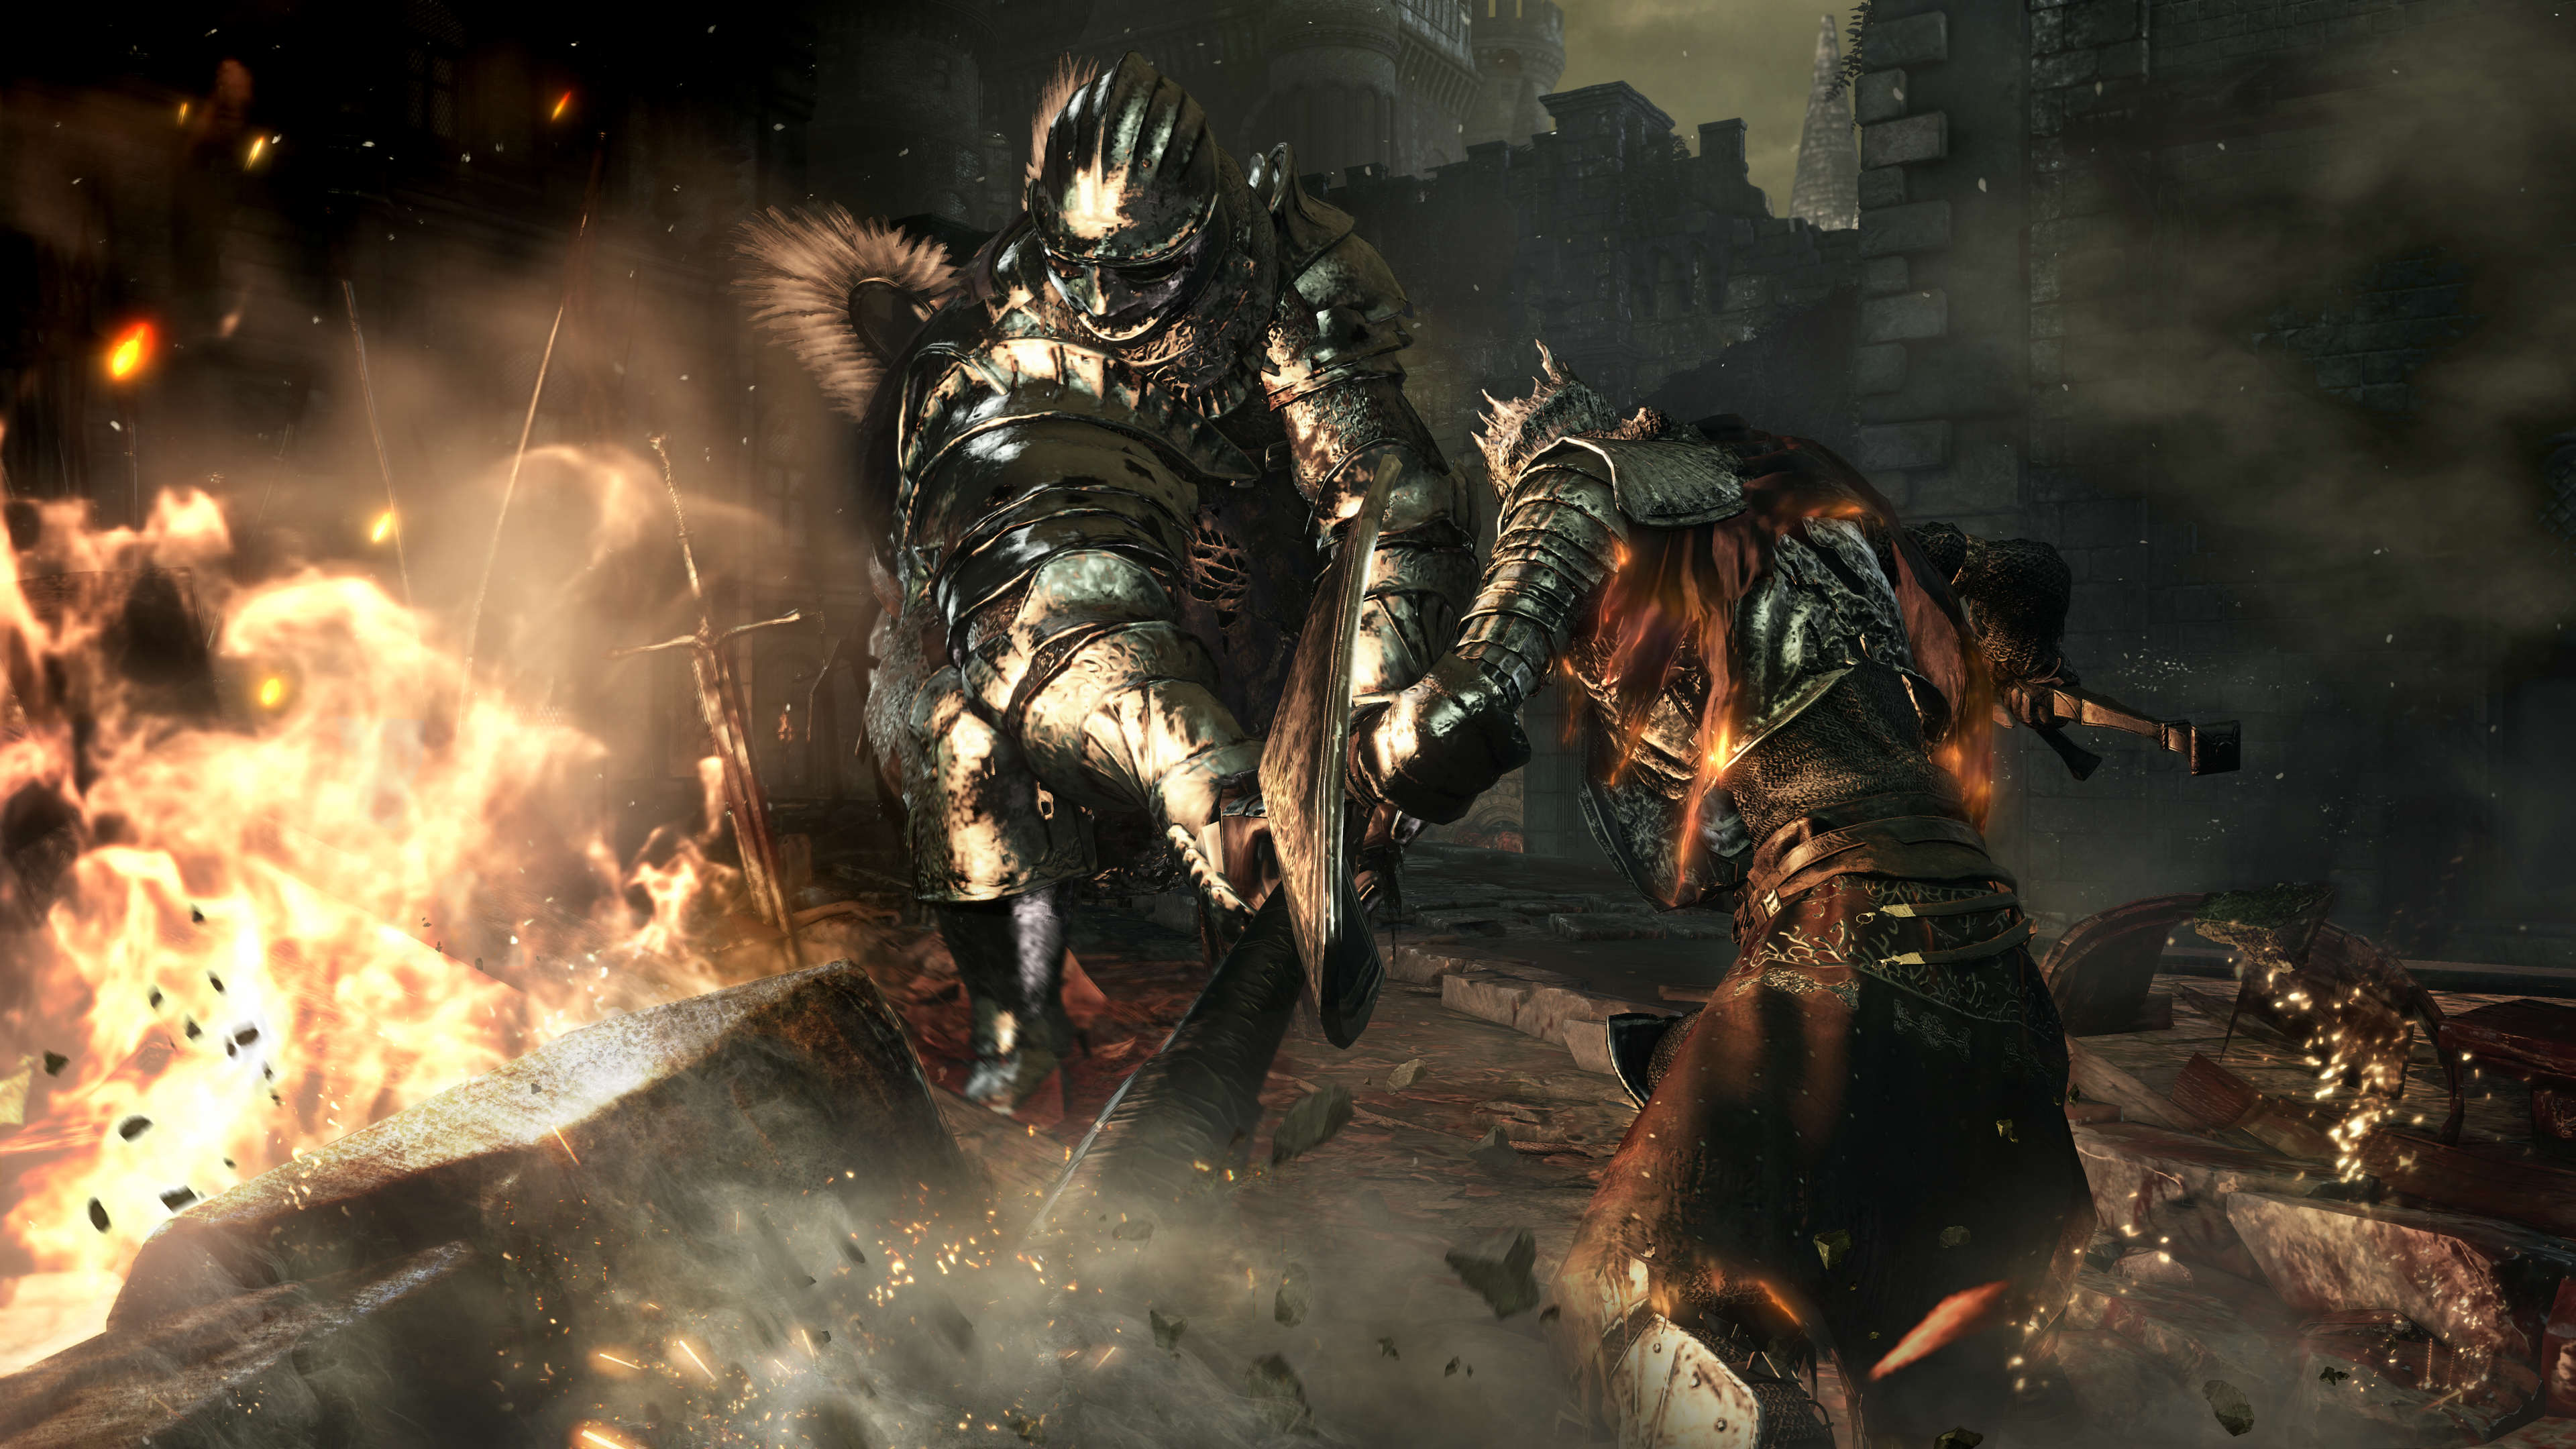 This Guy Just Beat Dark Souls 3 Using Only His Feet wh4etpa7skadzd3cnsqt